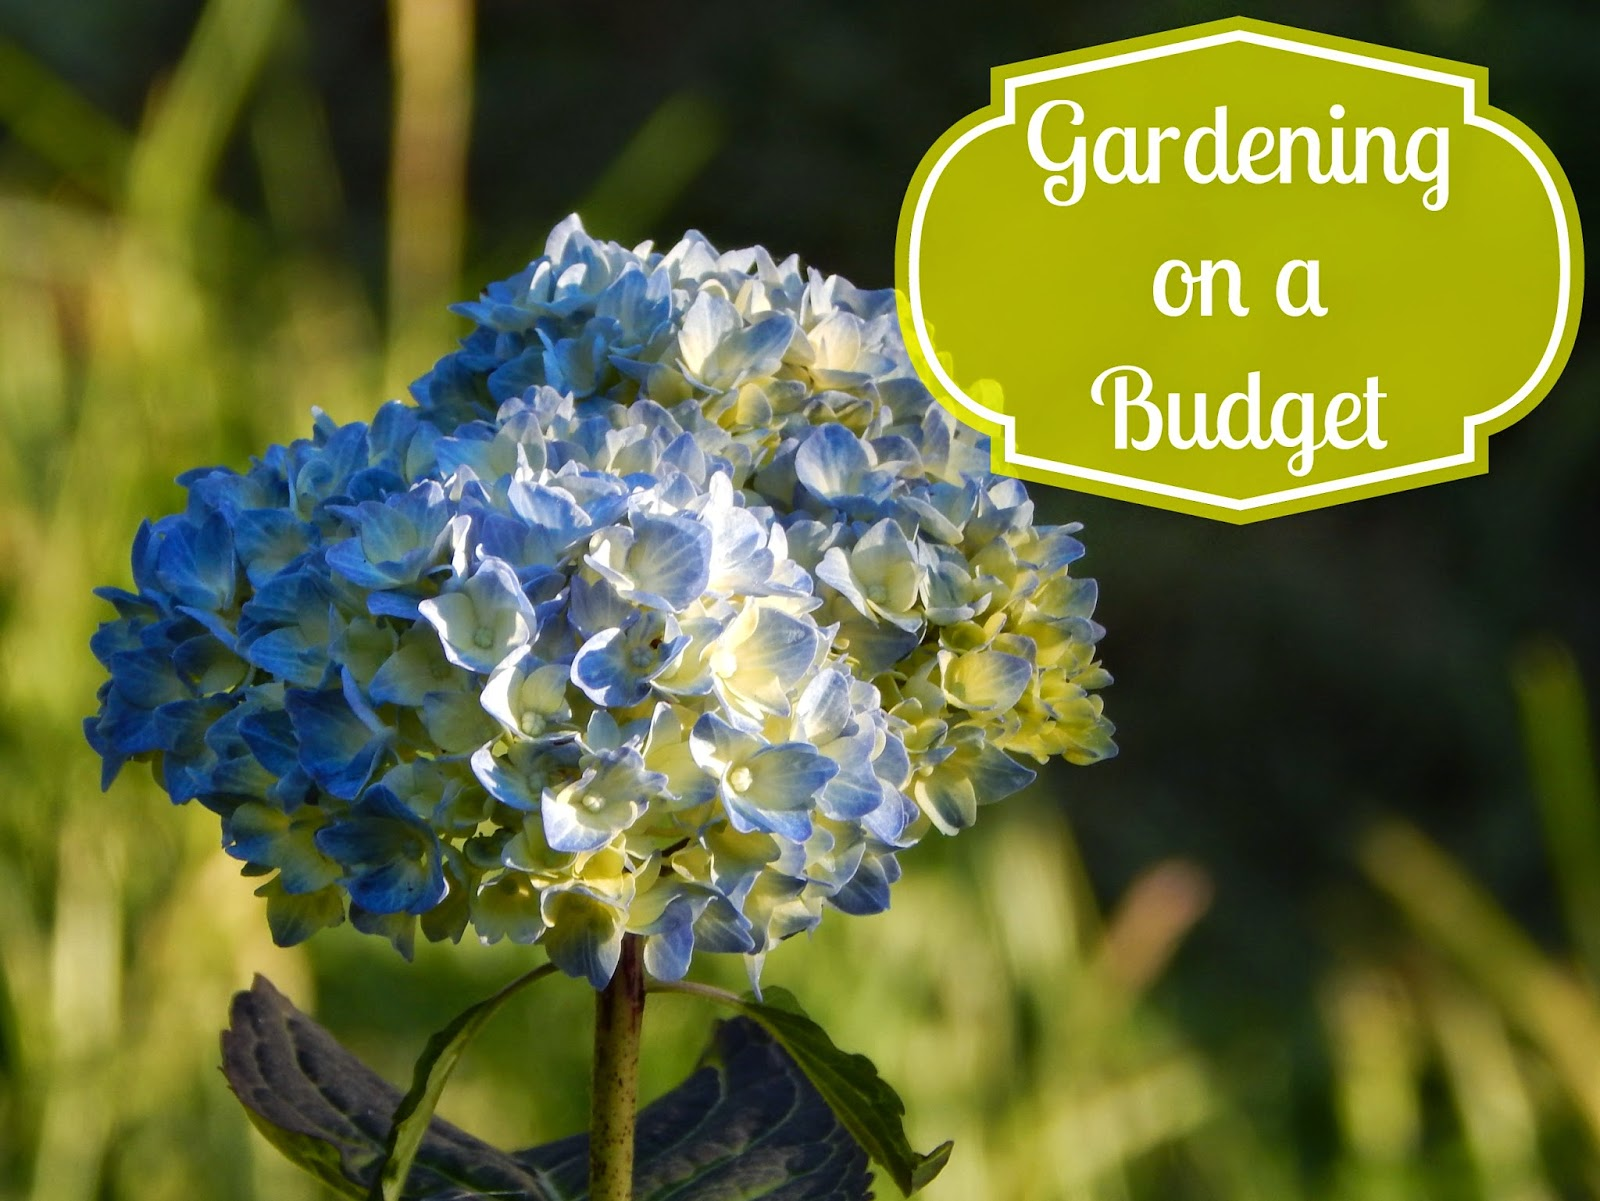 Gardening on a budget 5 ways for Second hand garden tools